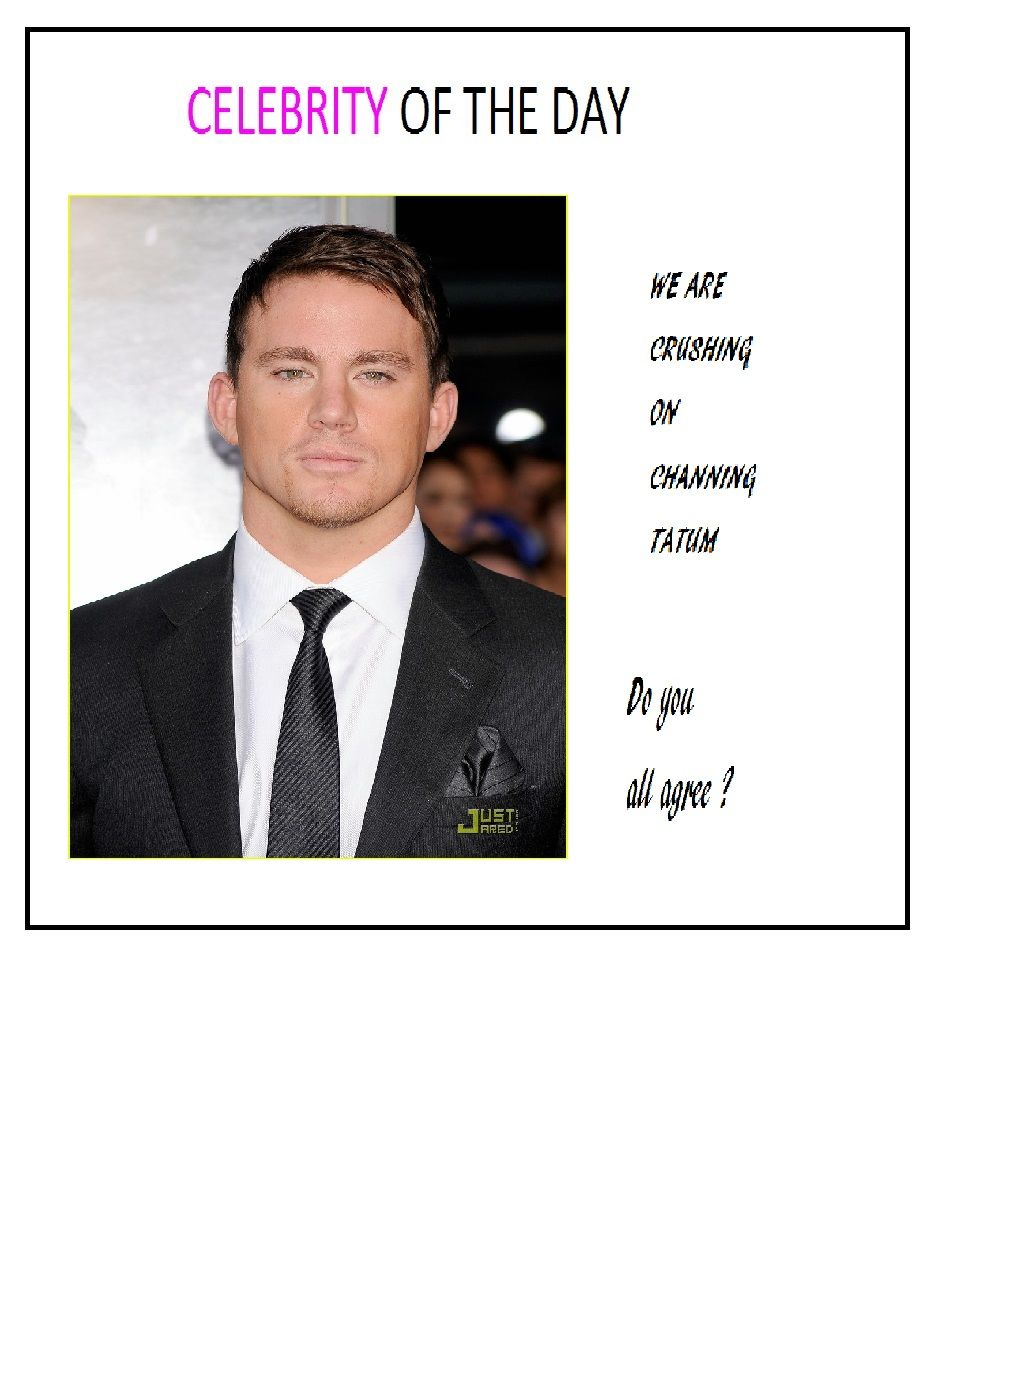 Our celeb of the day to day is Channing Tatum